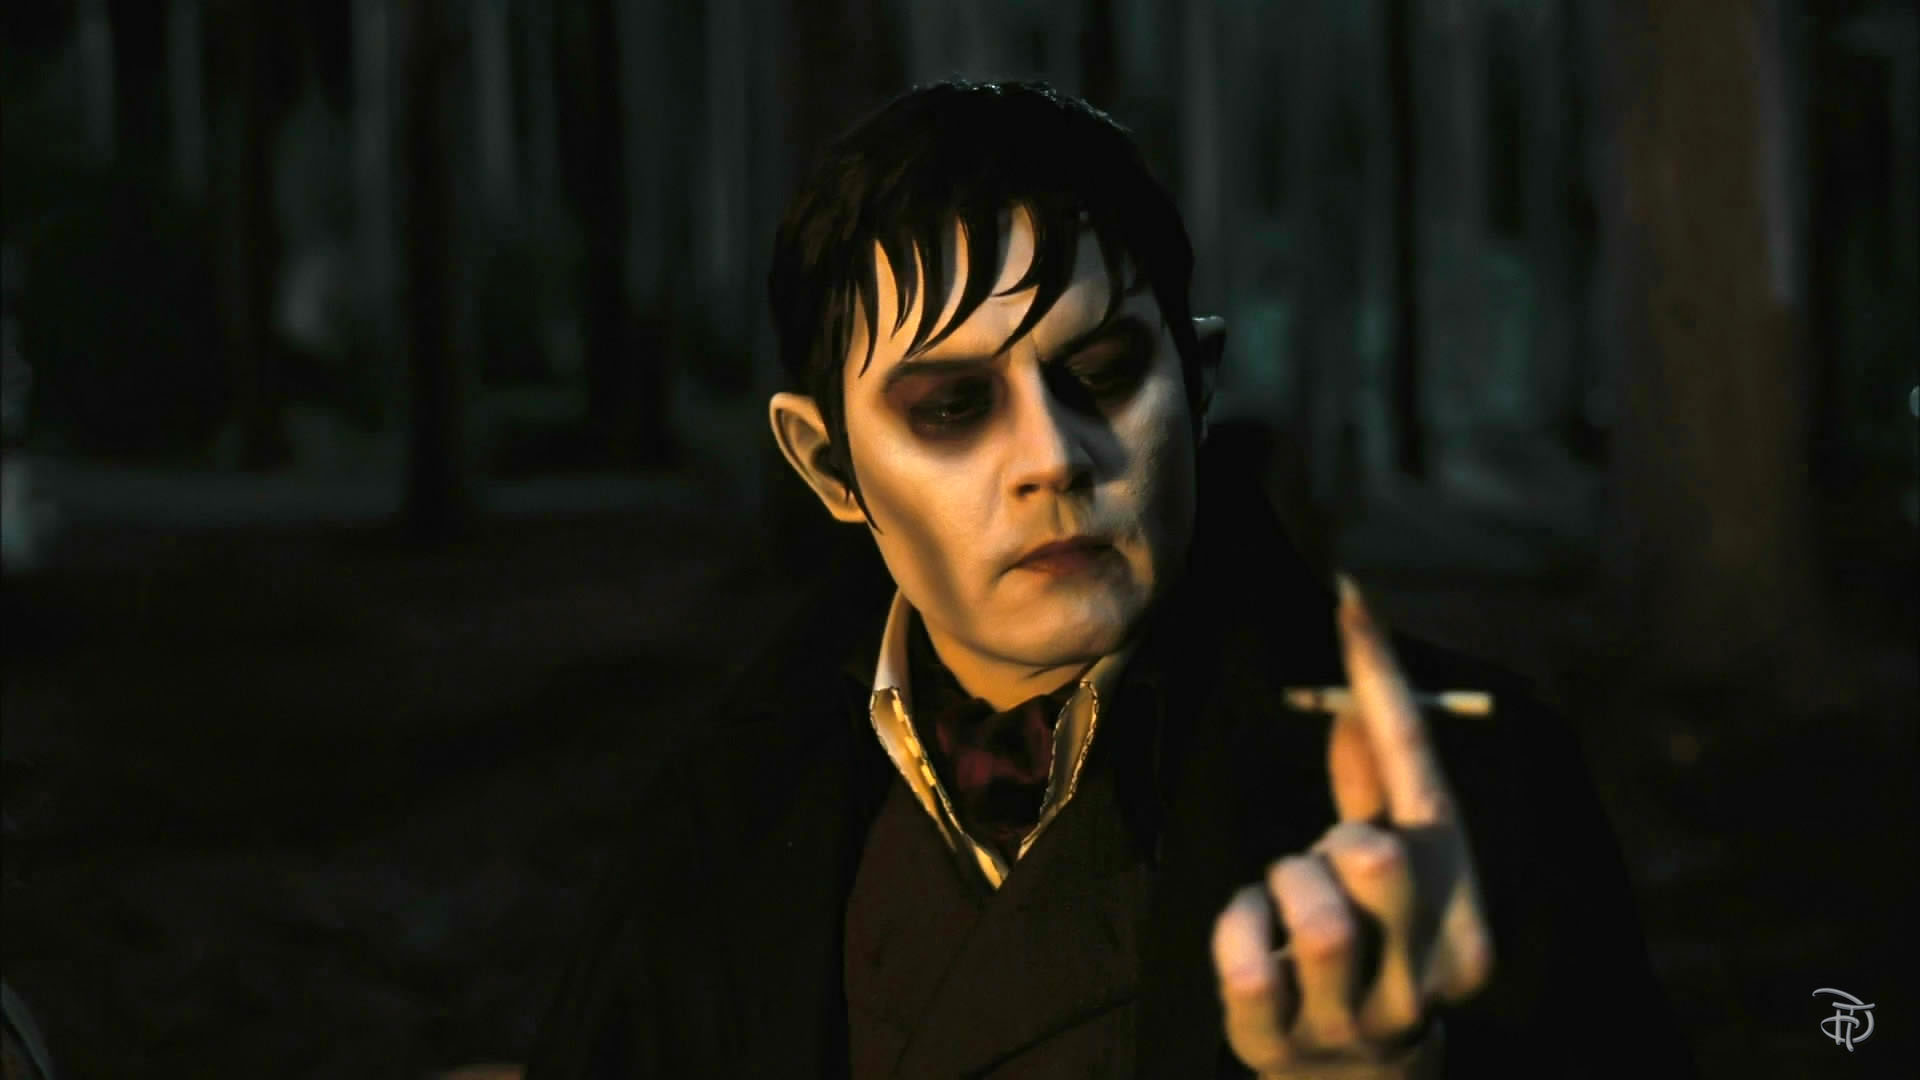 Burtons Dark Shadows images Dark Shadows behind the scenes wallpaper 1920x1080